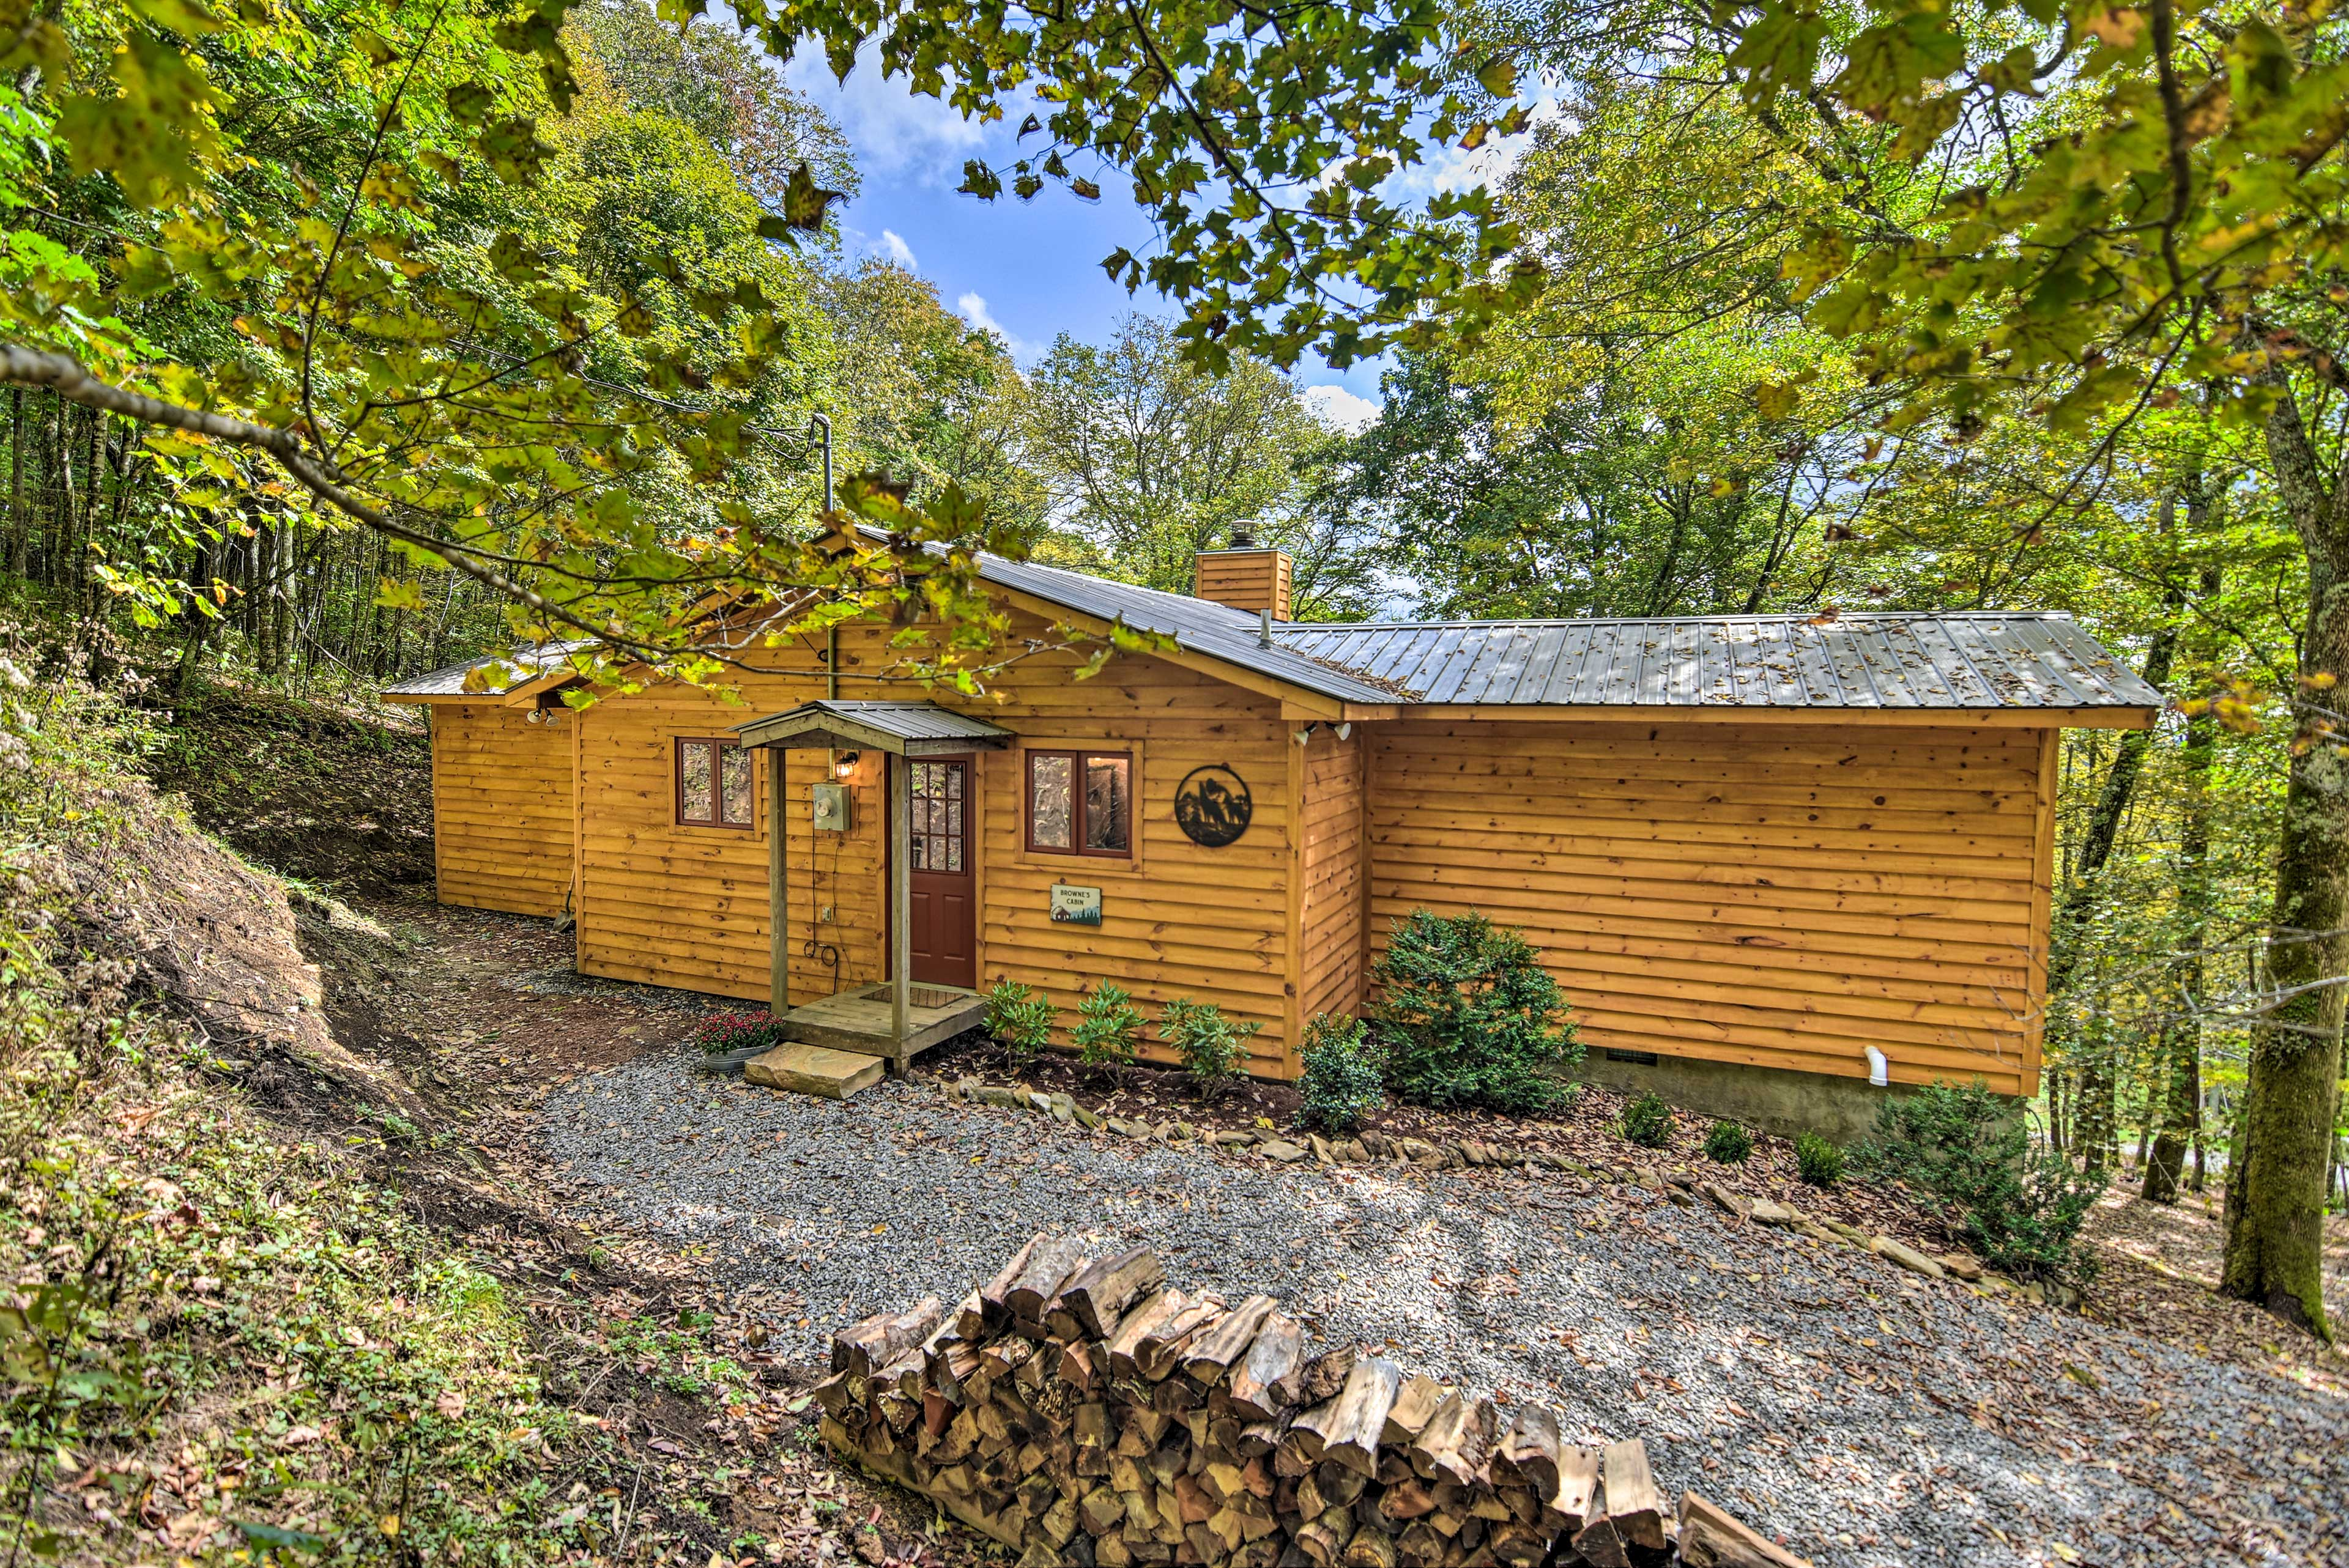 Welcome to 'Browne's Cabin,' a quaint mountaintop home with plenty of charm!